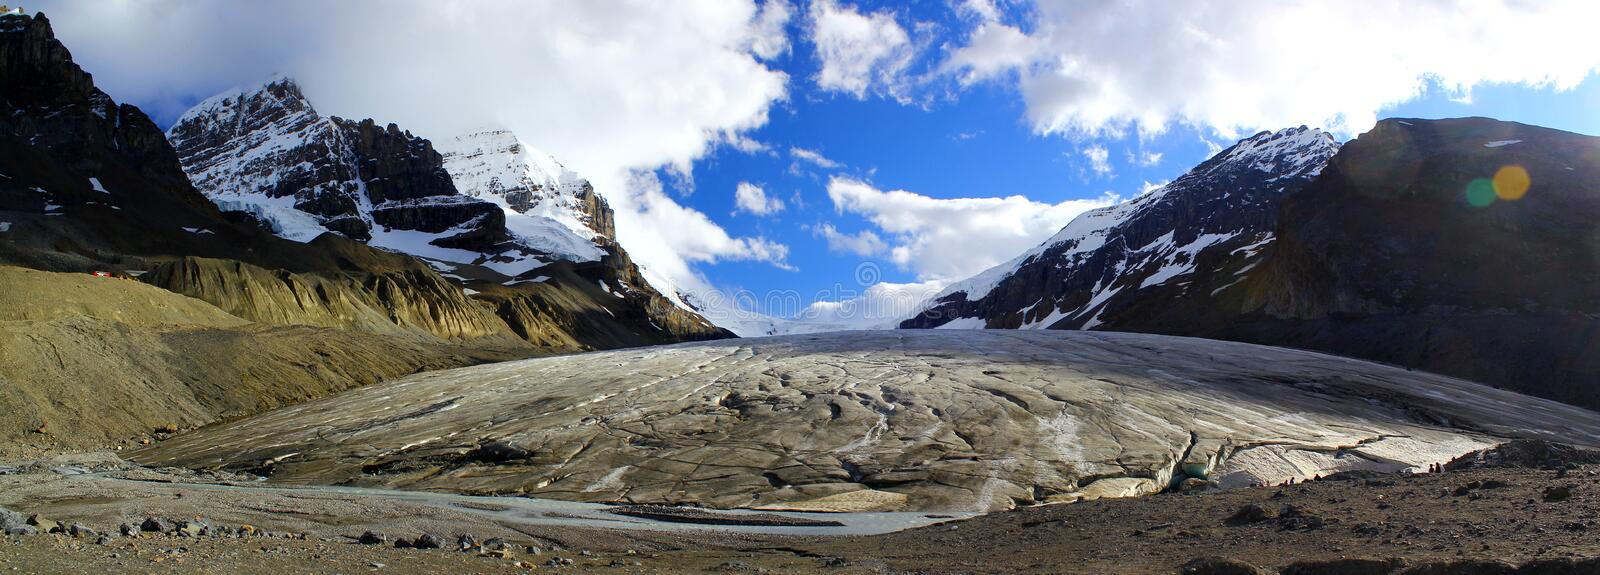 Panoramic shot of beautiful Athabasca Icefield in Canada / Banff and Jasper Nationalpark stock photo